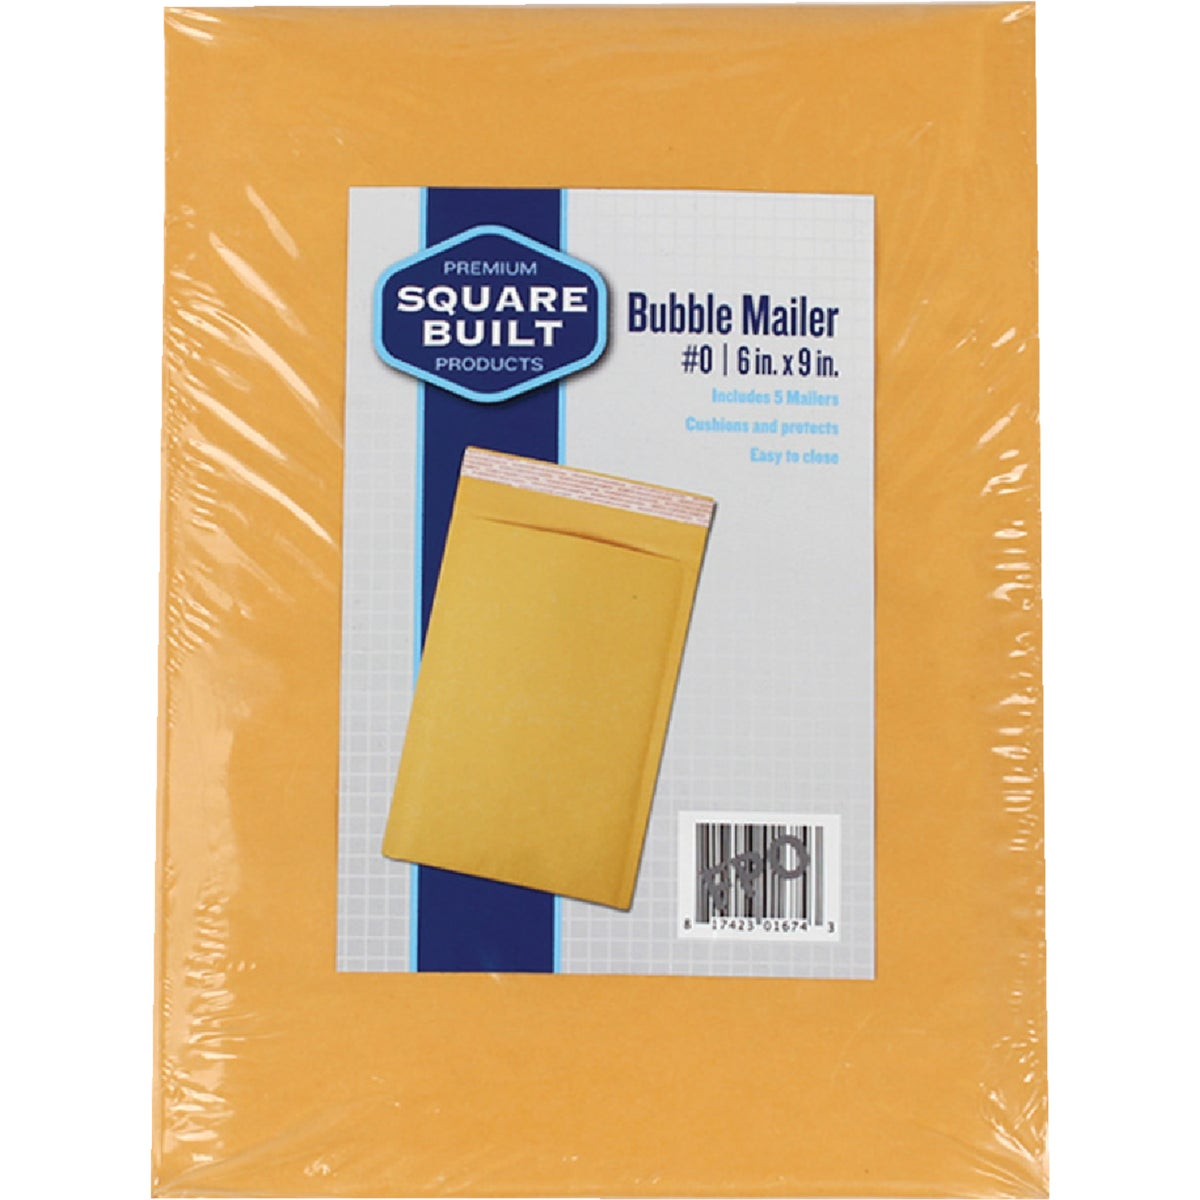 6PK 6X9 BUBBLE MAILER - RBM610-6 by Broadway Industries